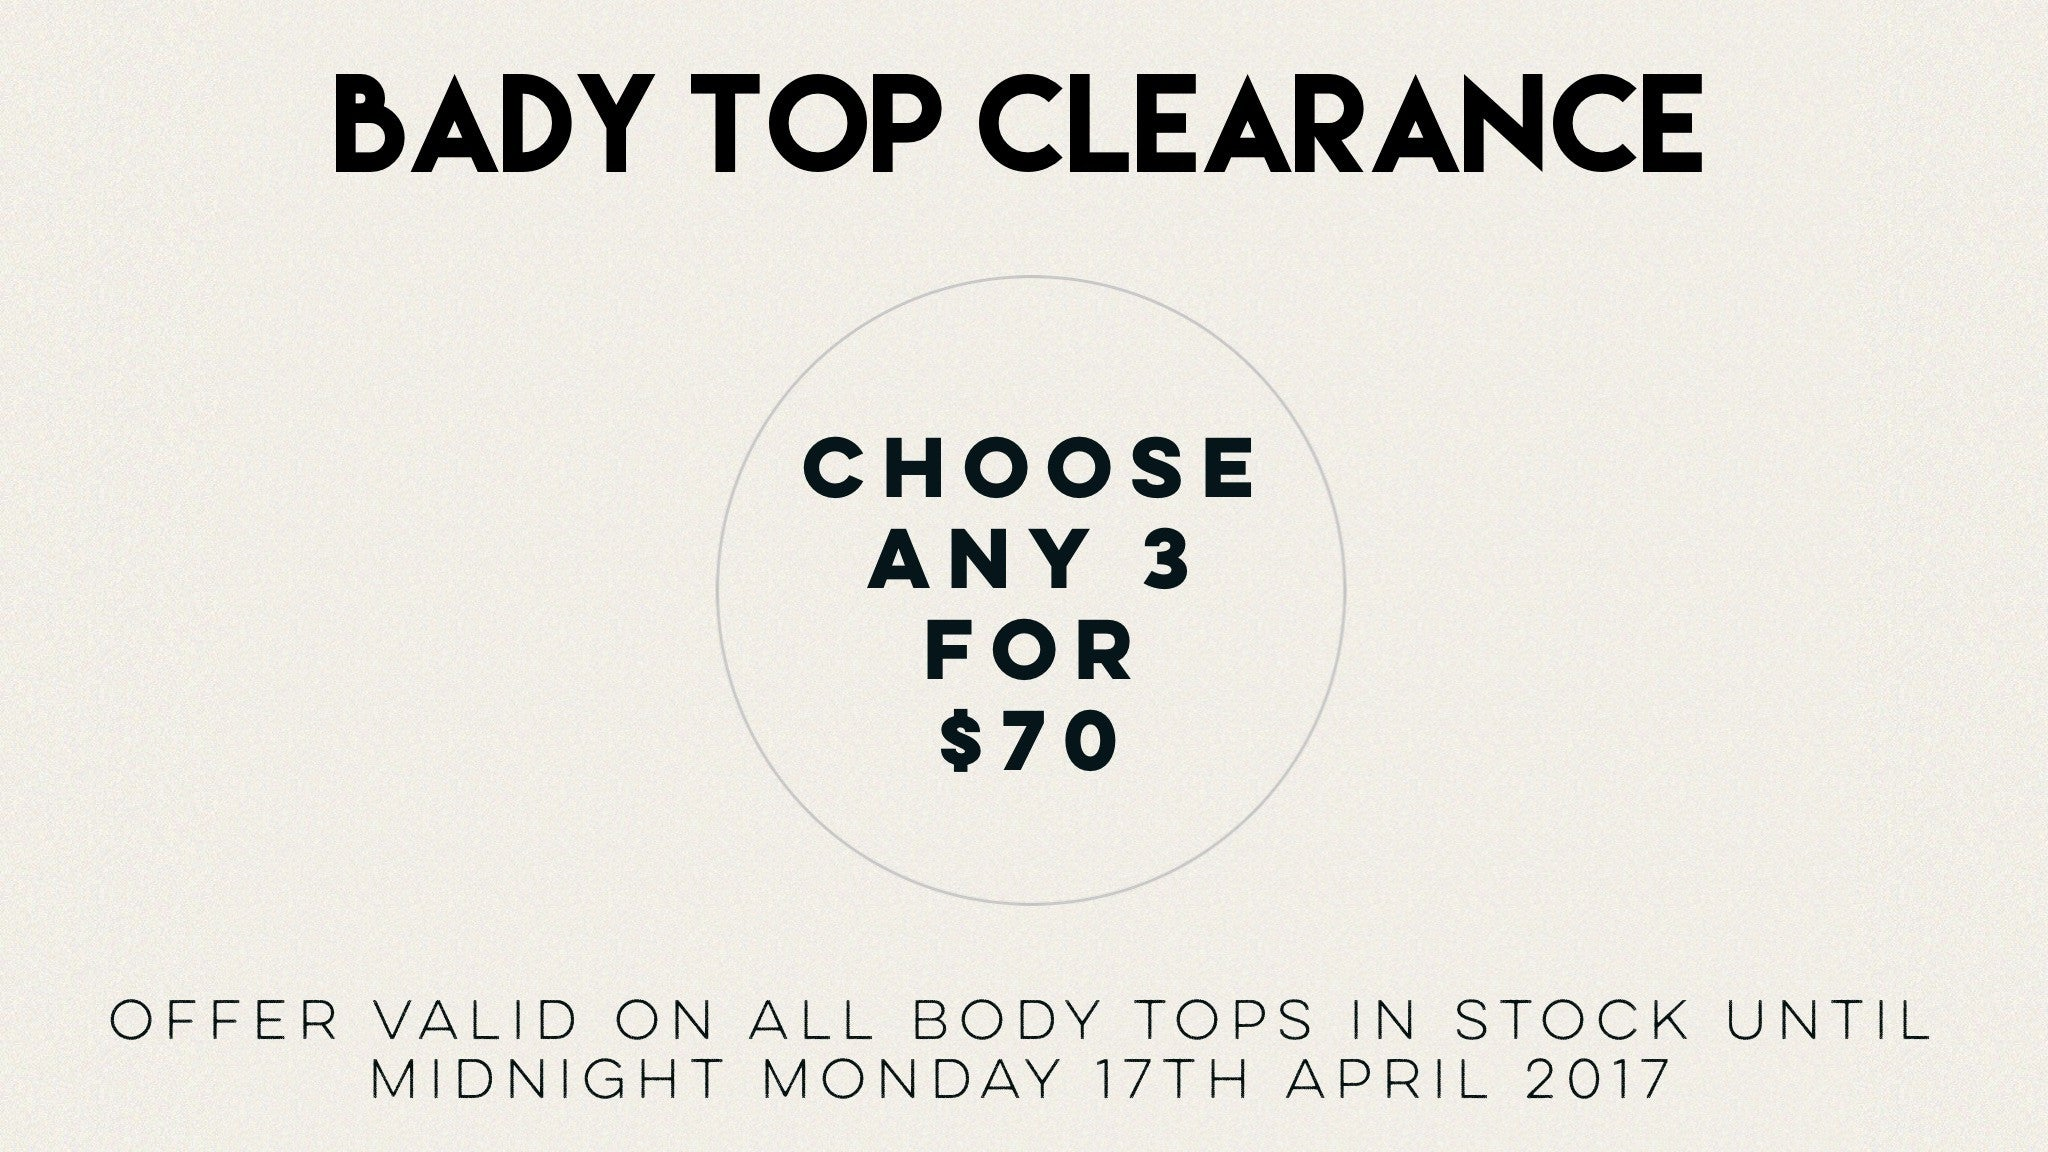 Any 3 Body Tops for $70